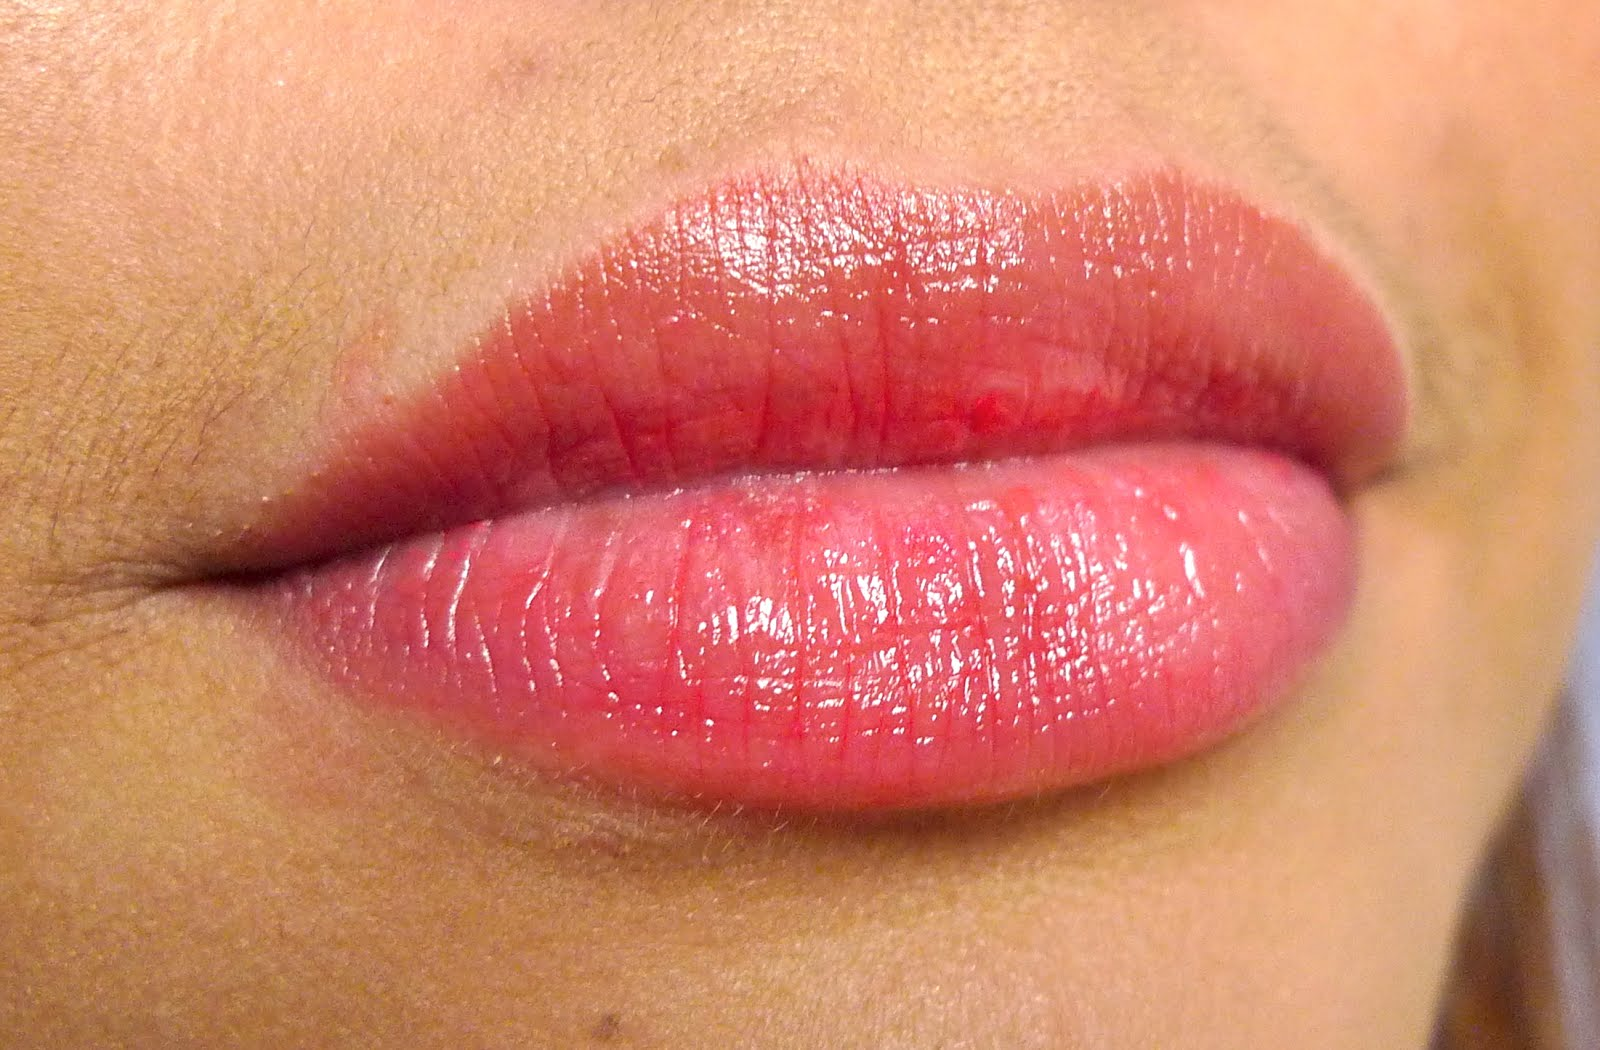 Bumps on Lips - Healthline